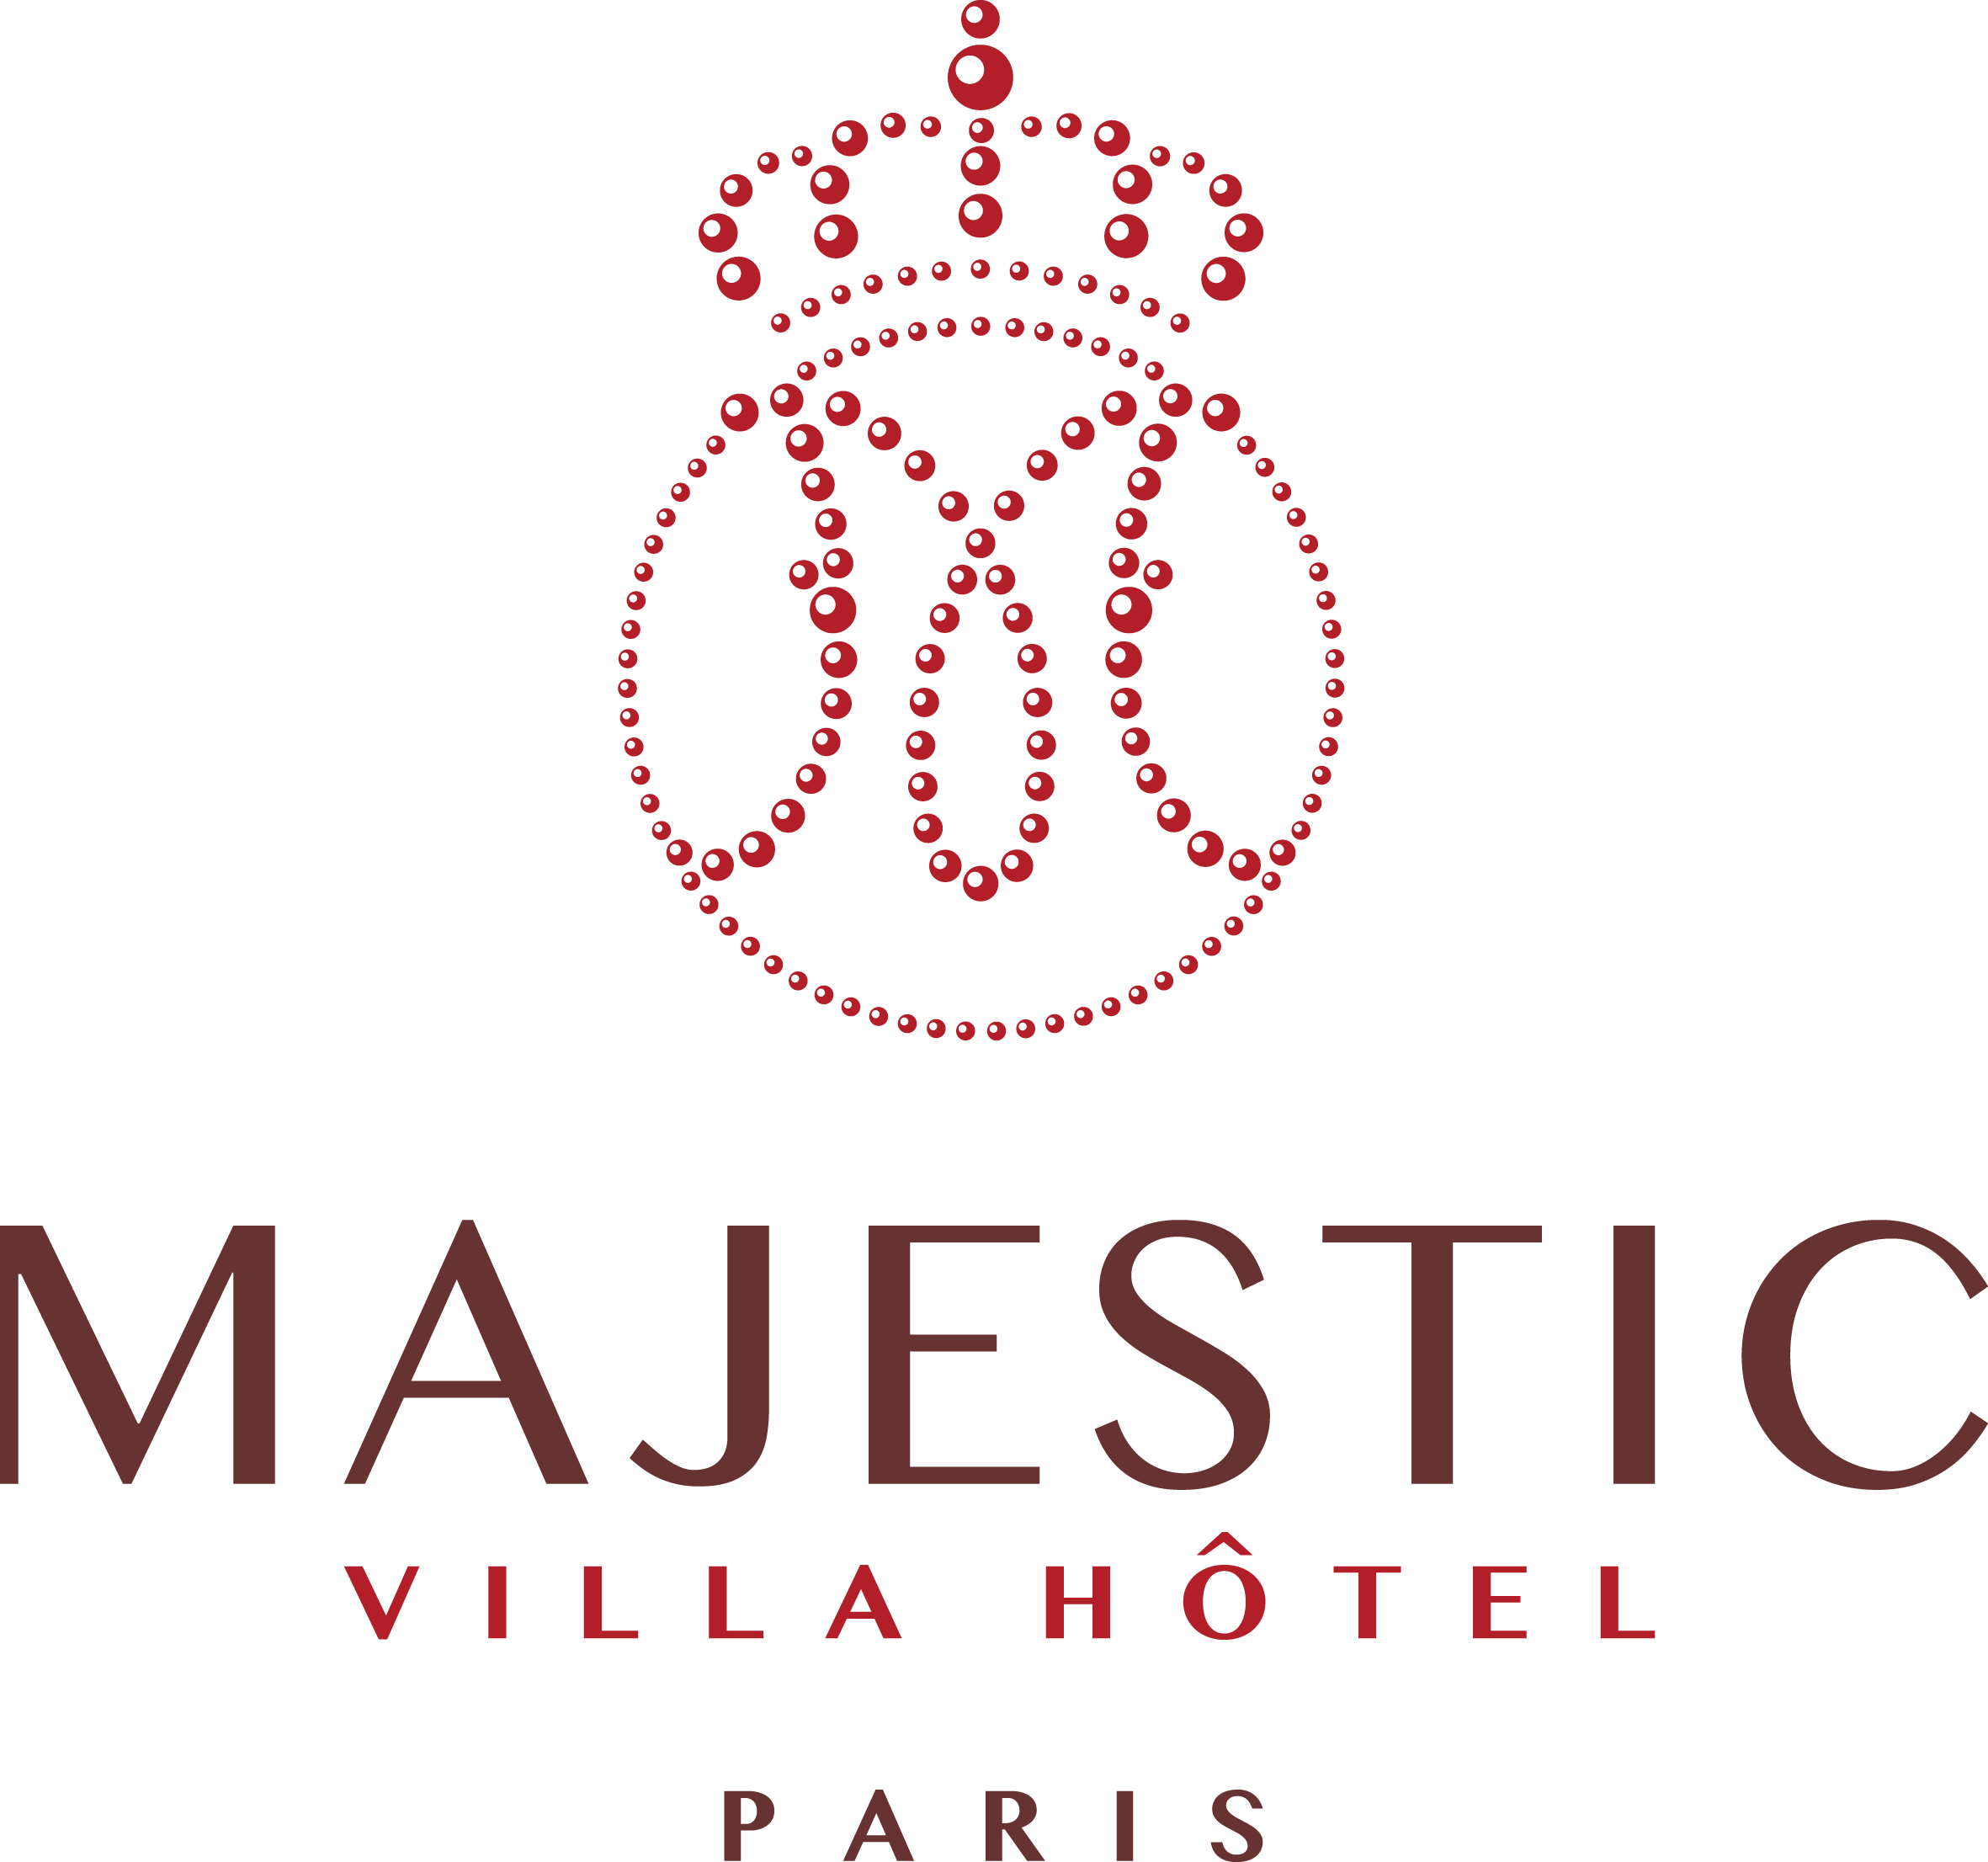 The Majestic Hotel Spa